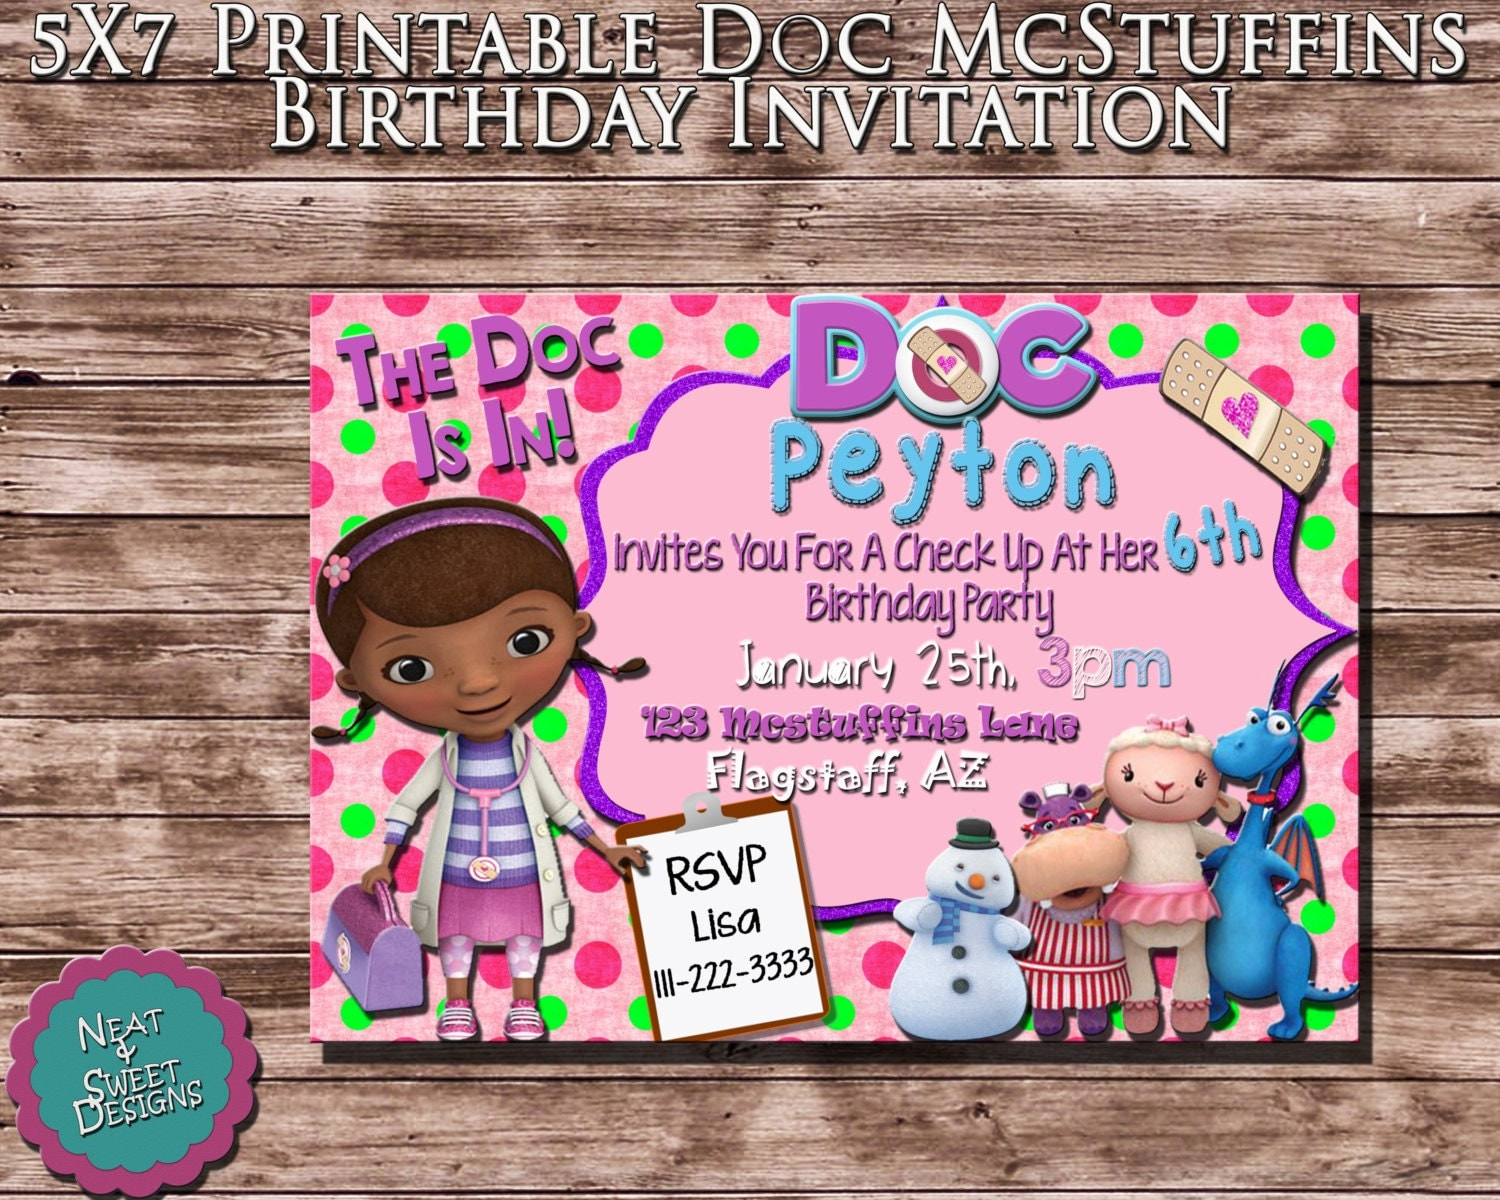 5 X 7 Printable Doc McStuffins Birthday Invitation - Disney Doc Mcstuffins Invite - Girl Doctor Invitation - Doc Mcstuffins Party